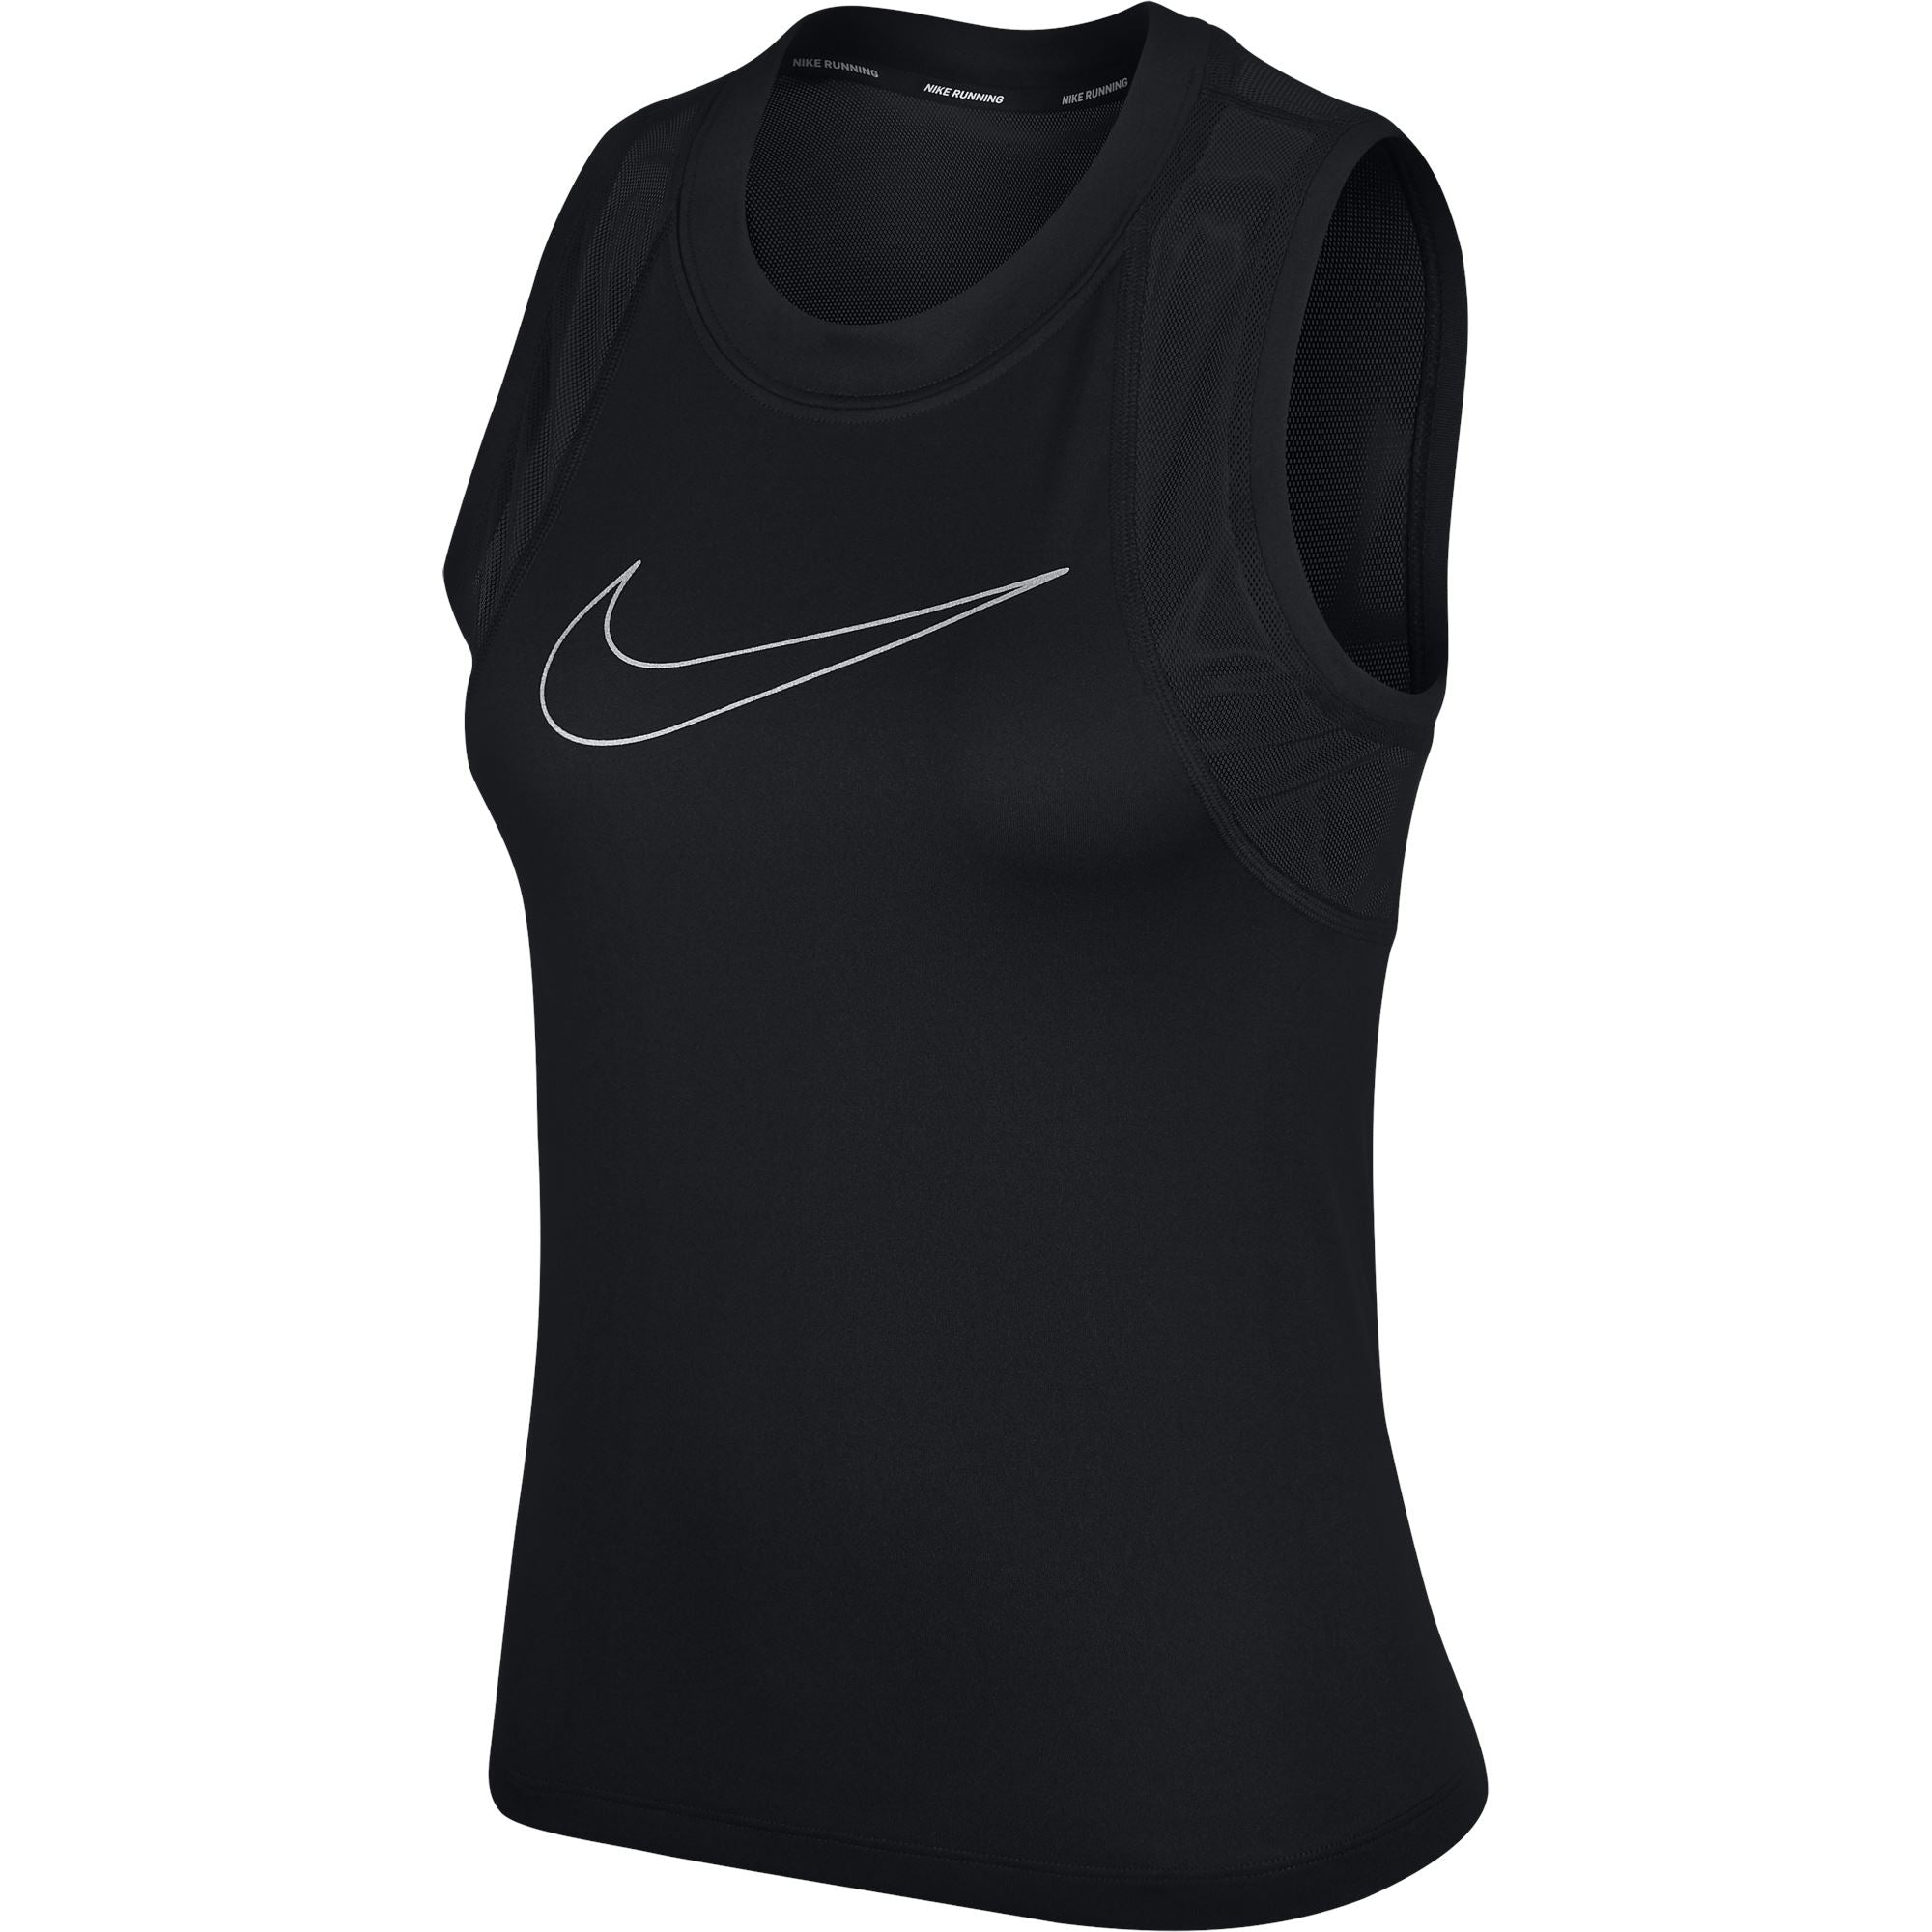 Nike Womens Miler Tanks - Black/Metallic Silver SP-ApparelTanks-Womens Nike